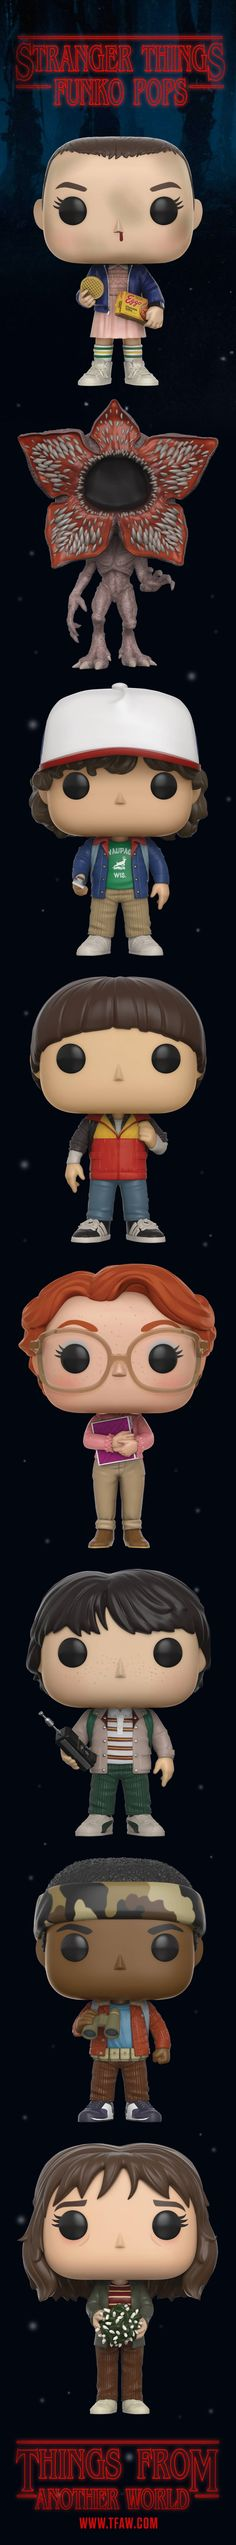 Get all your favorite Stranger Things characters like Eleven, Mike, Barb and even the Demogorgon in Funko Pop's style. Save 20% when you Pre-Order!